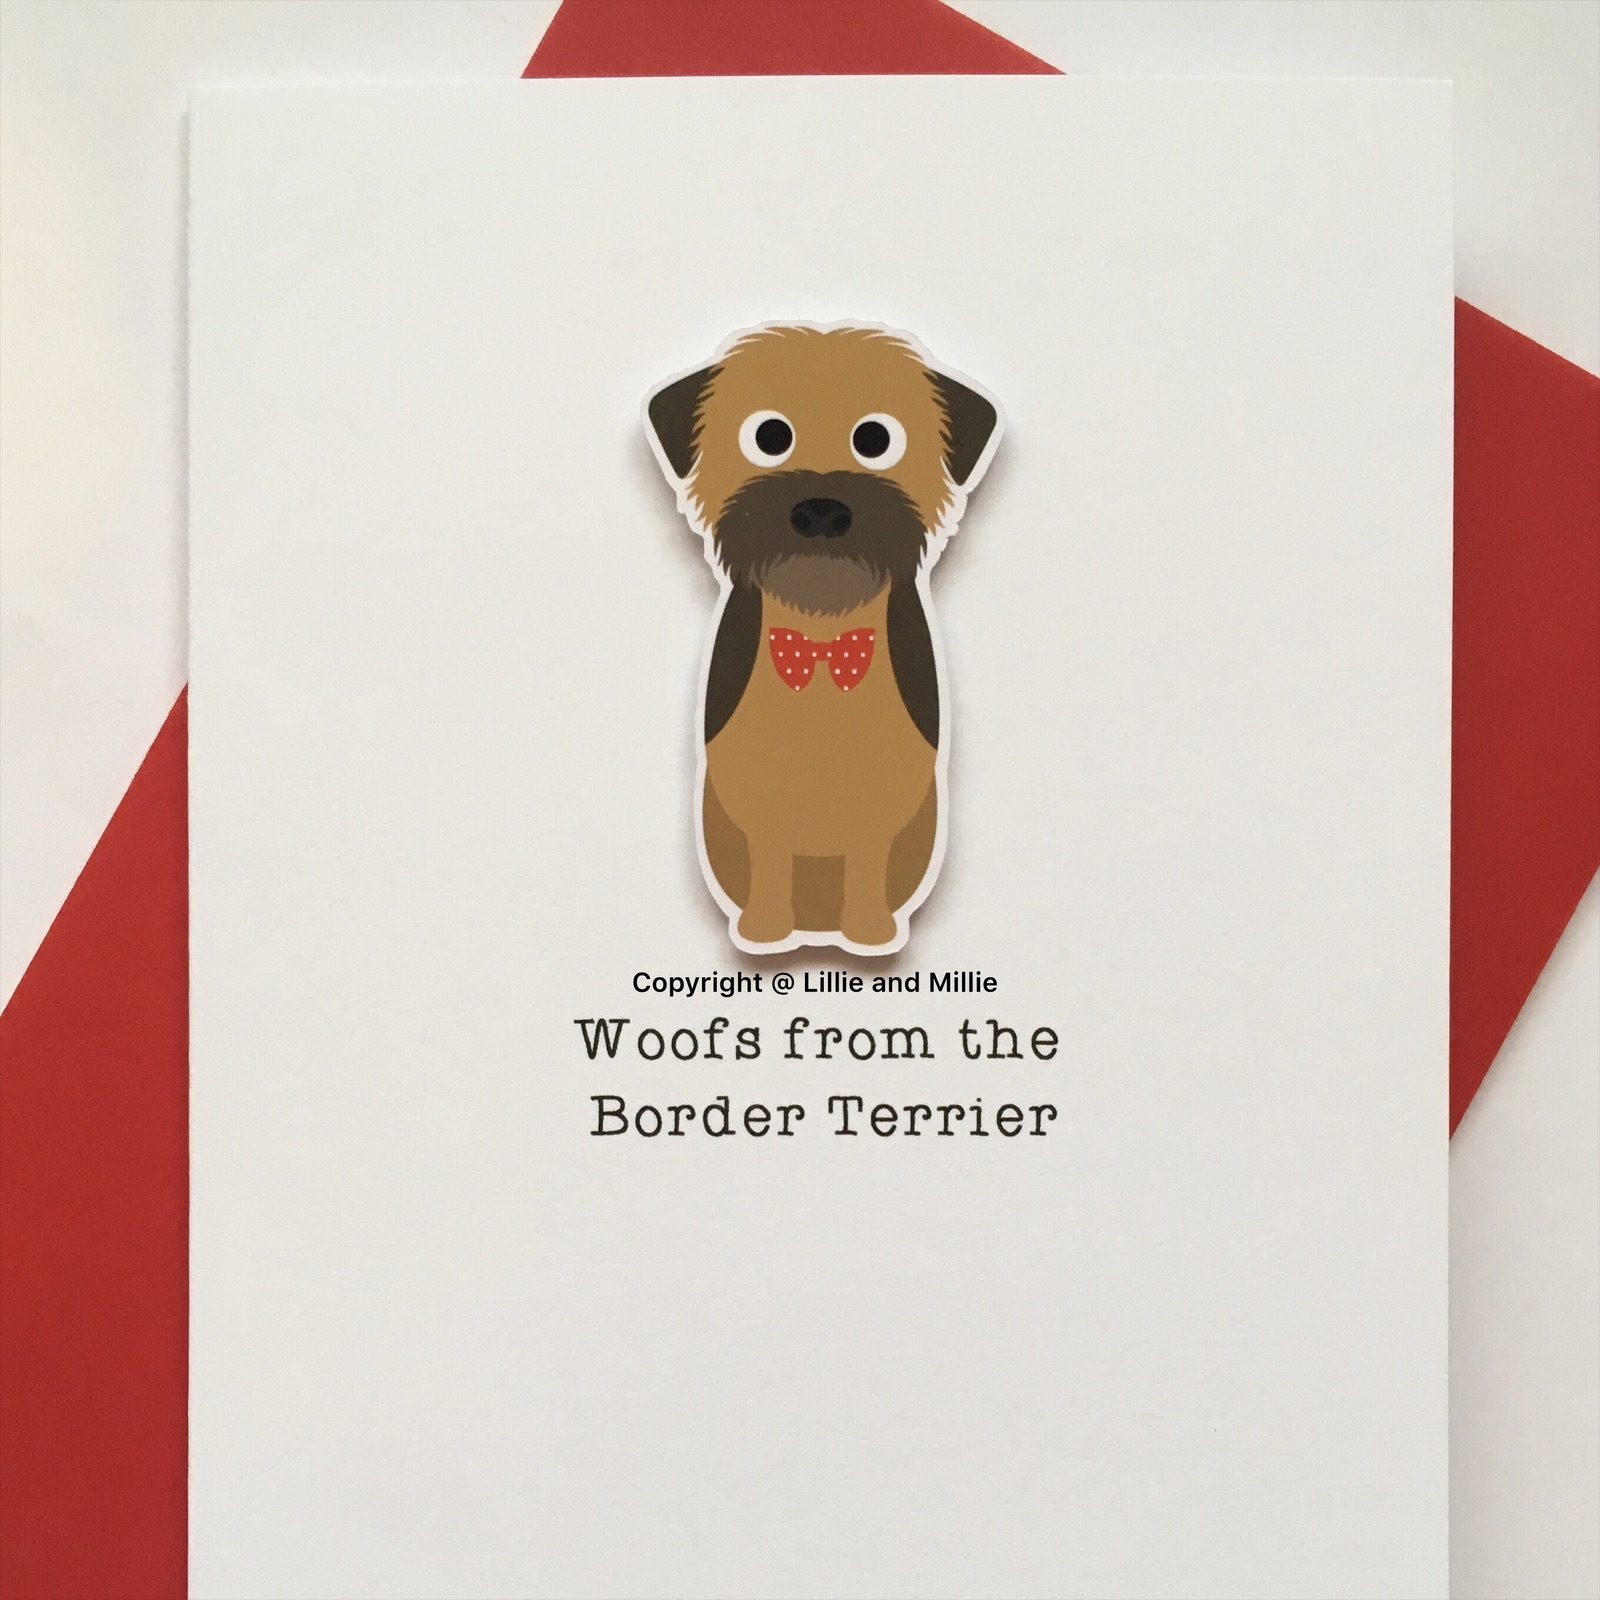 Cute and Cuddly Sitting Border Terrier Woofs Card